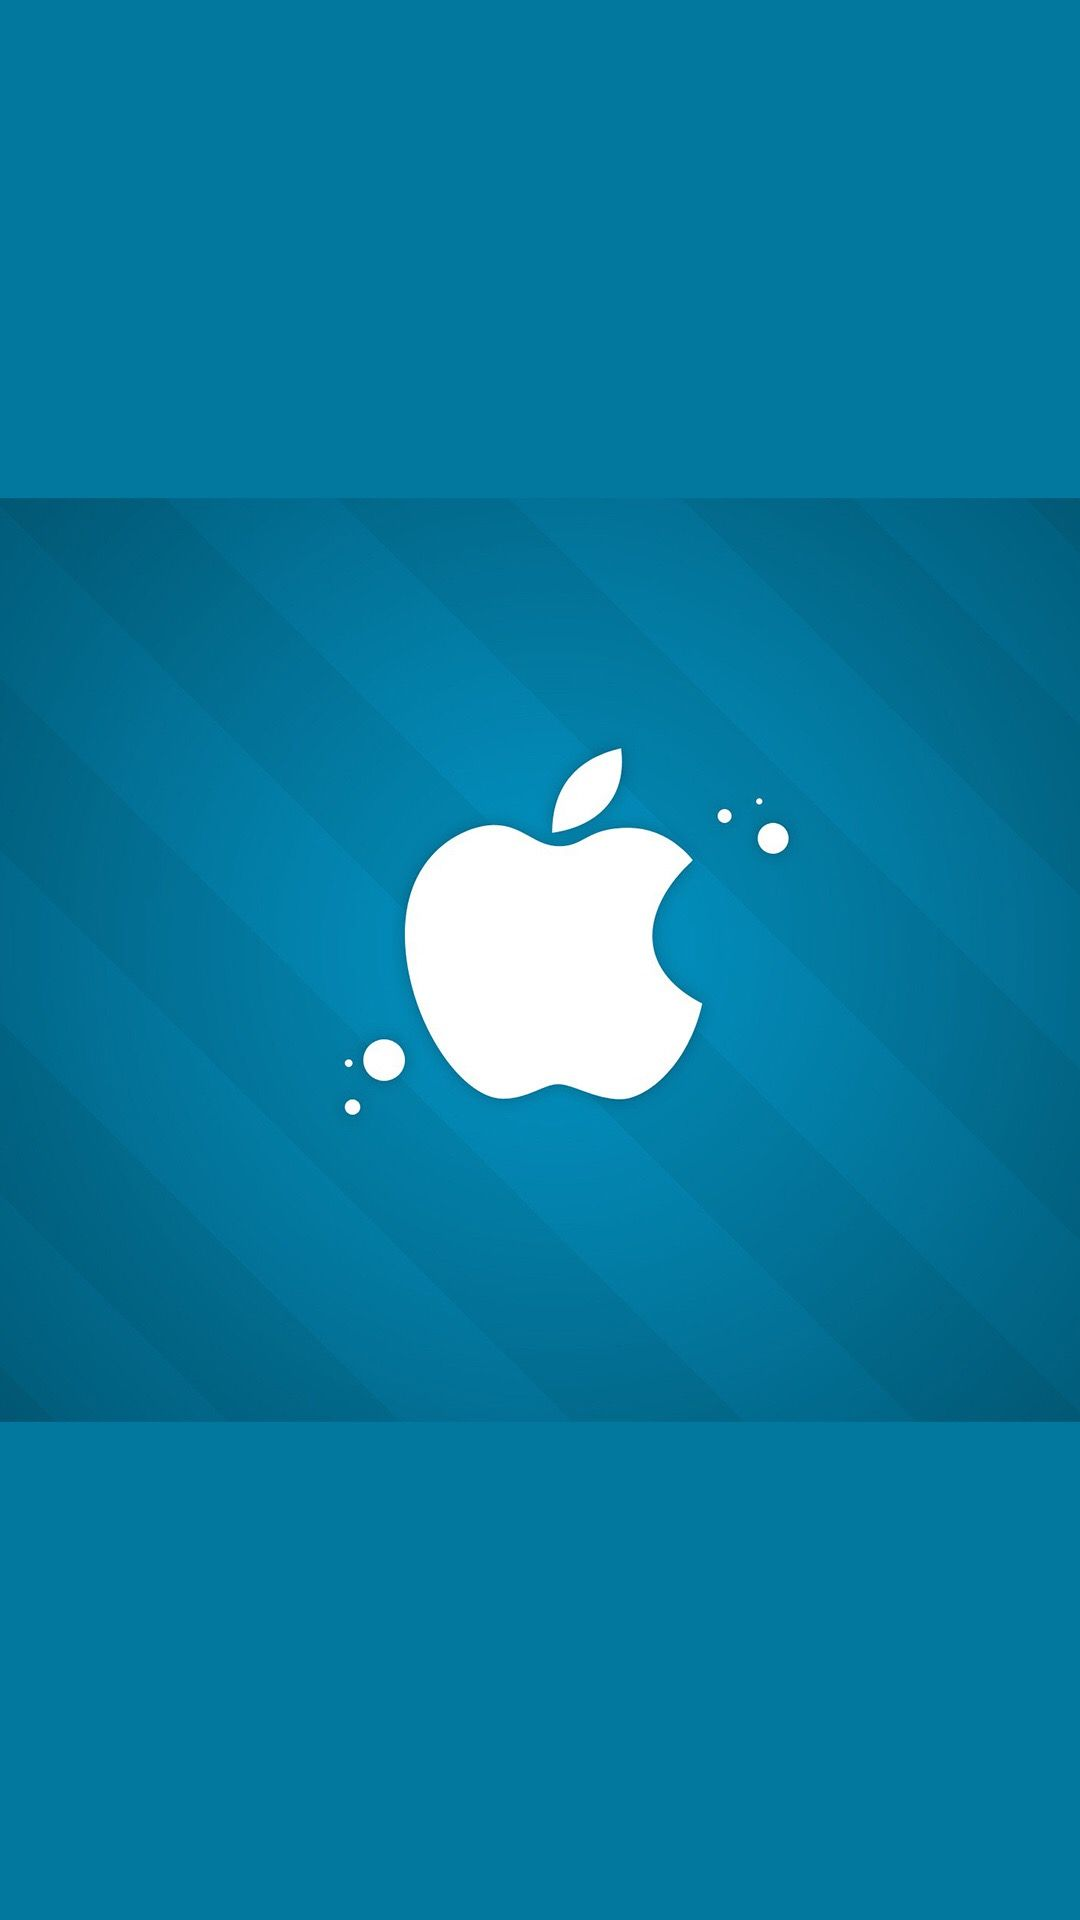 Pin By Mindy Ann On Iphone 8 Plus Wallpaper Apple Logo Wallpaper Apple Wallpaper Apple Logo Wallpaper Iphone